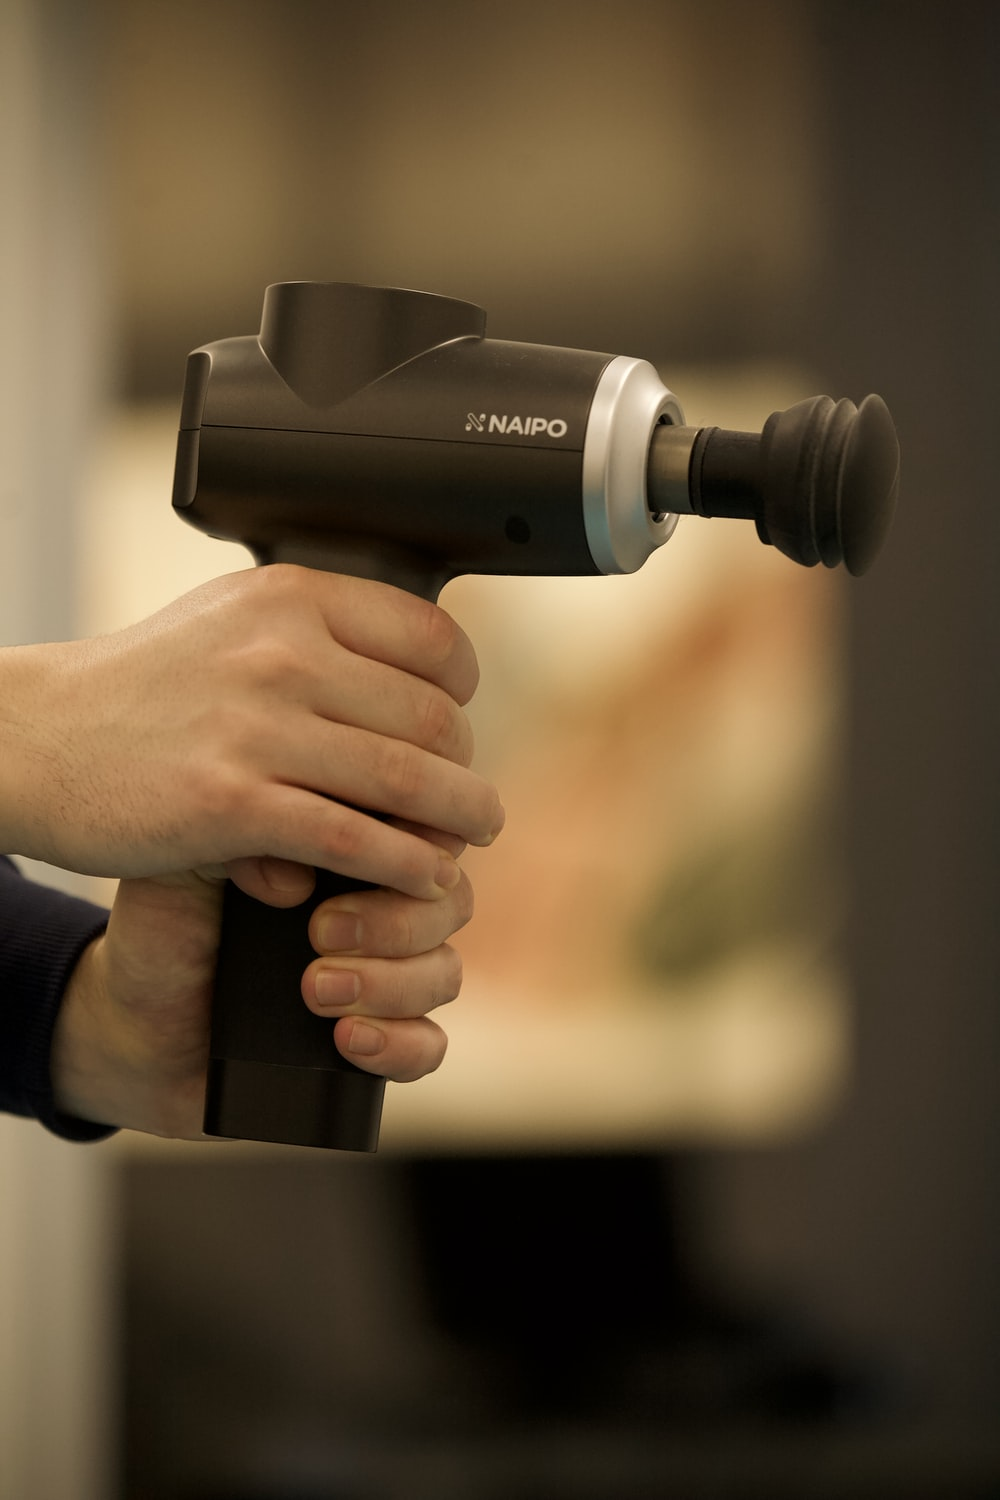 person holding black and gray cordless hand drill